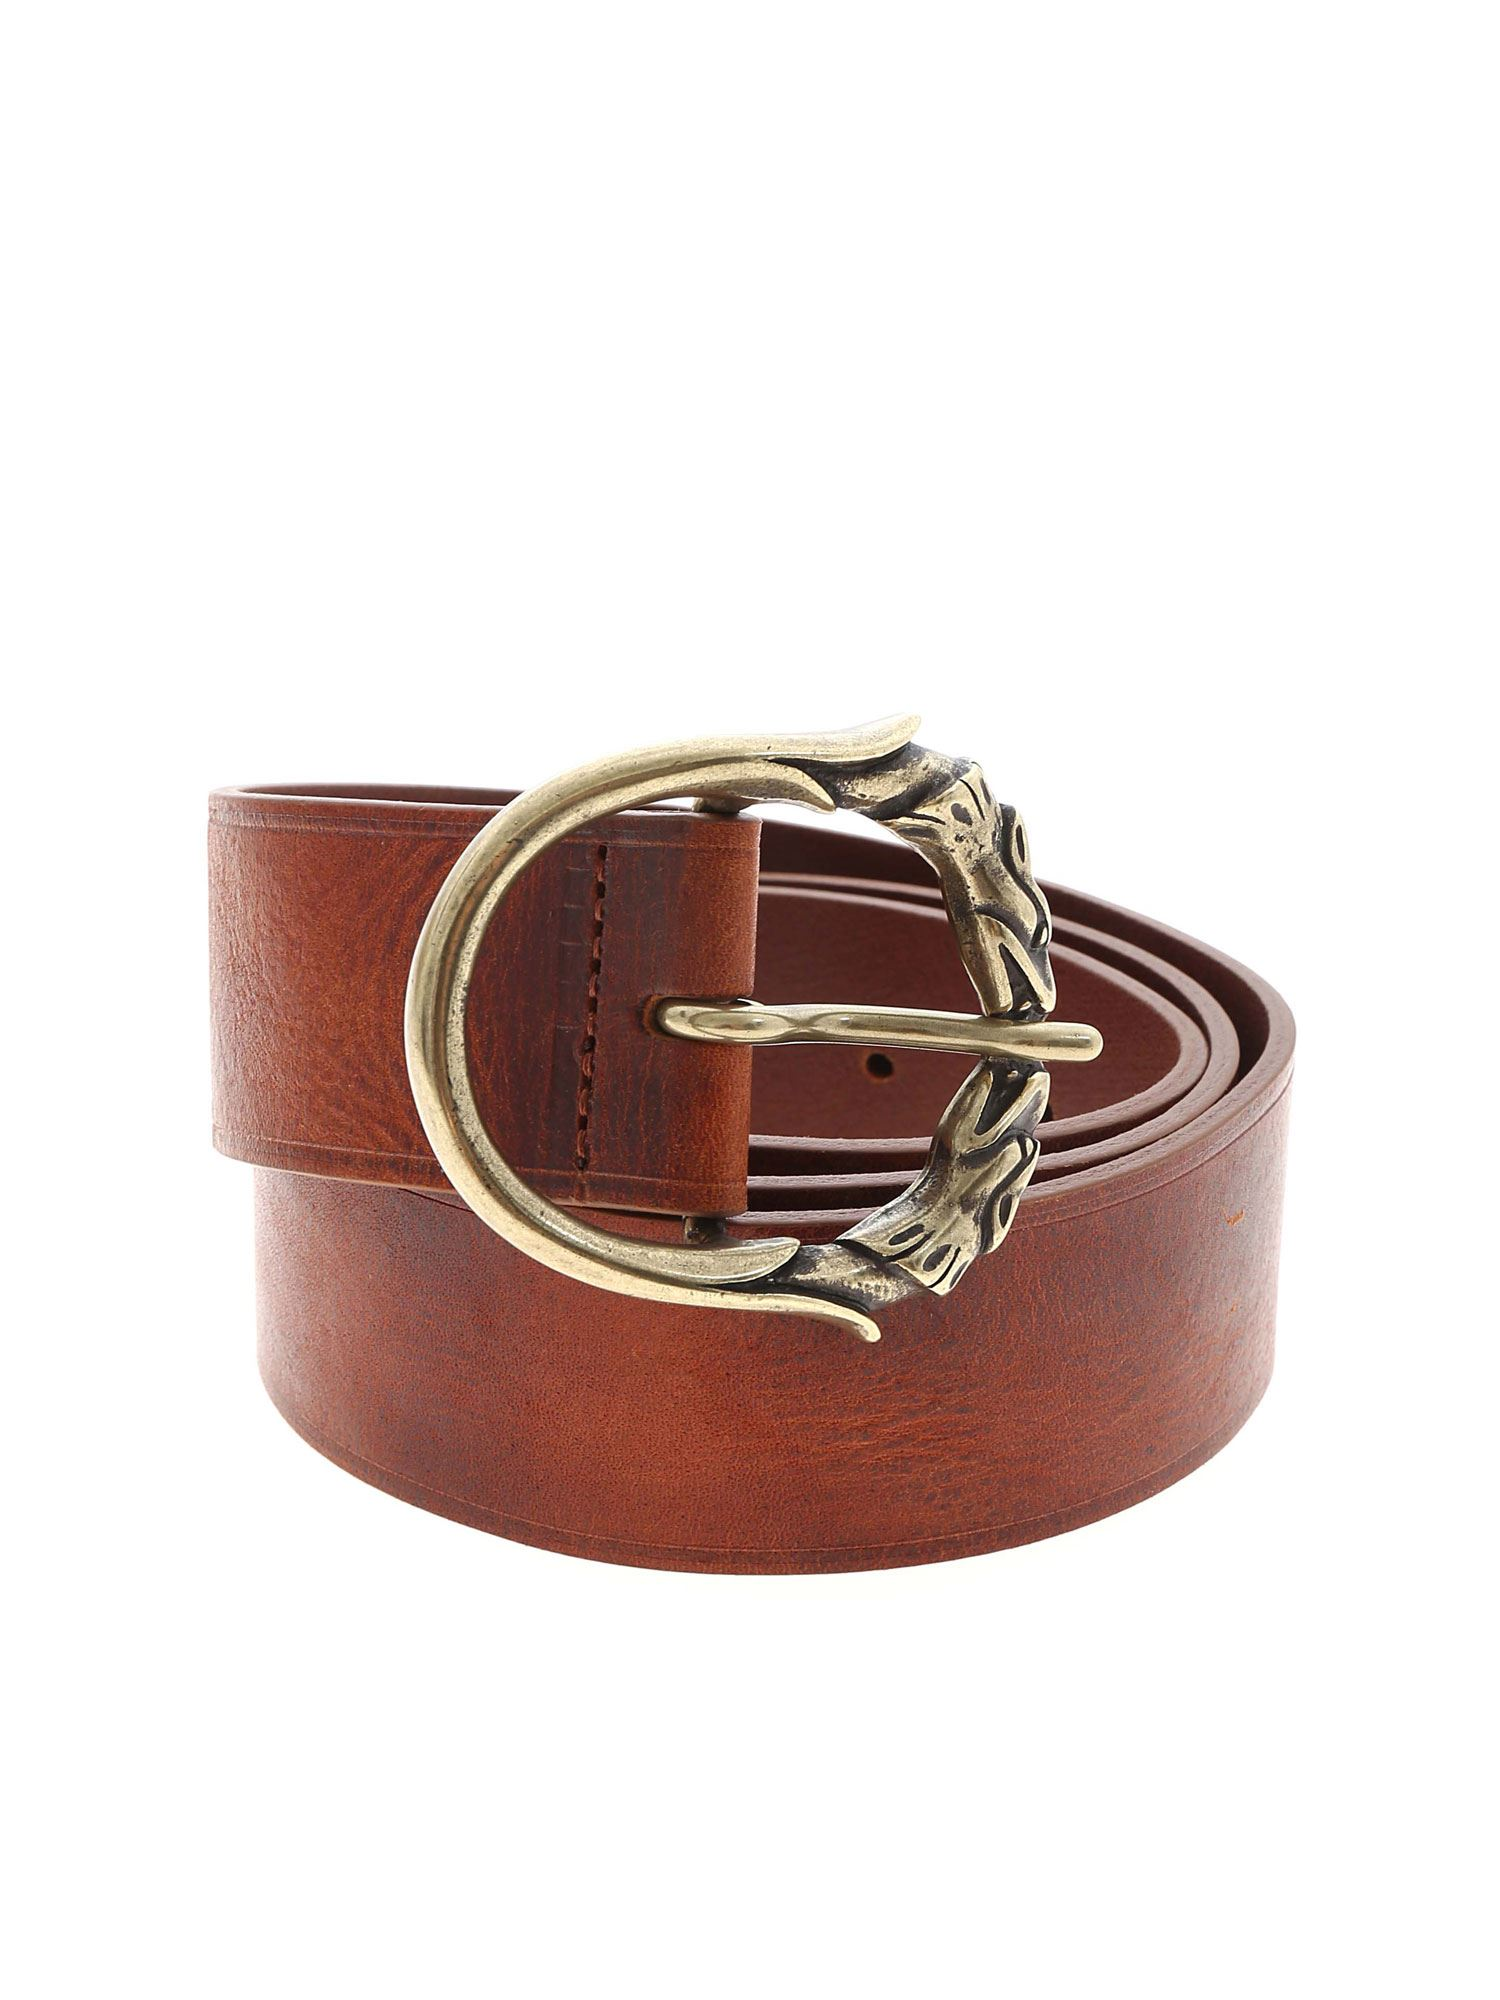 Dondup LEATHER BELT IN BROWN